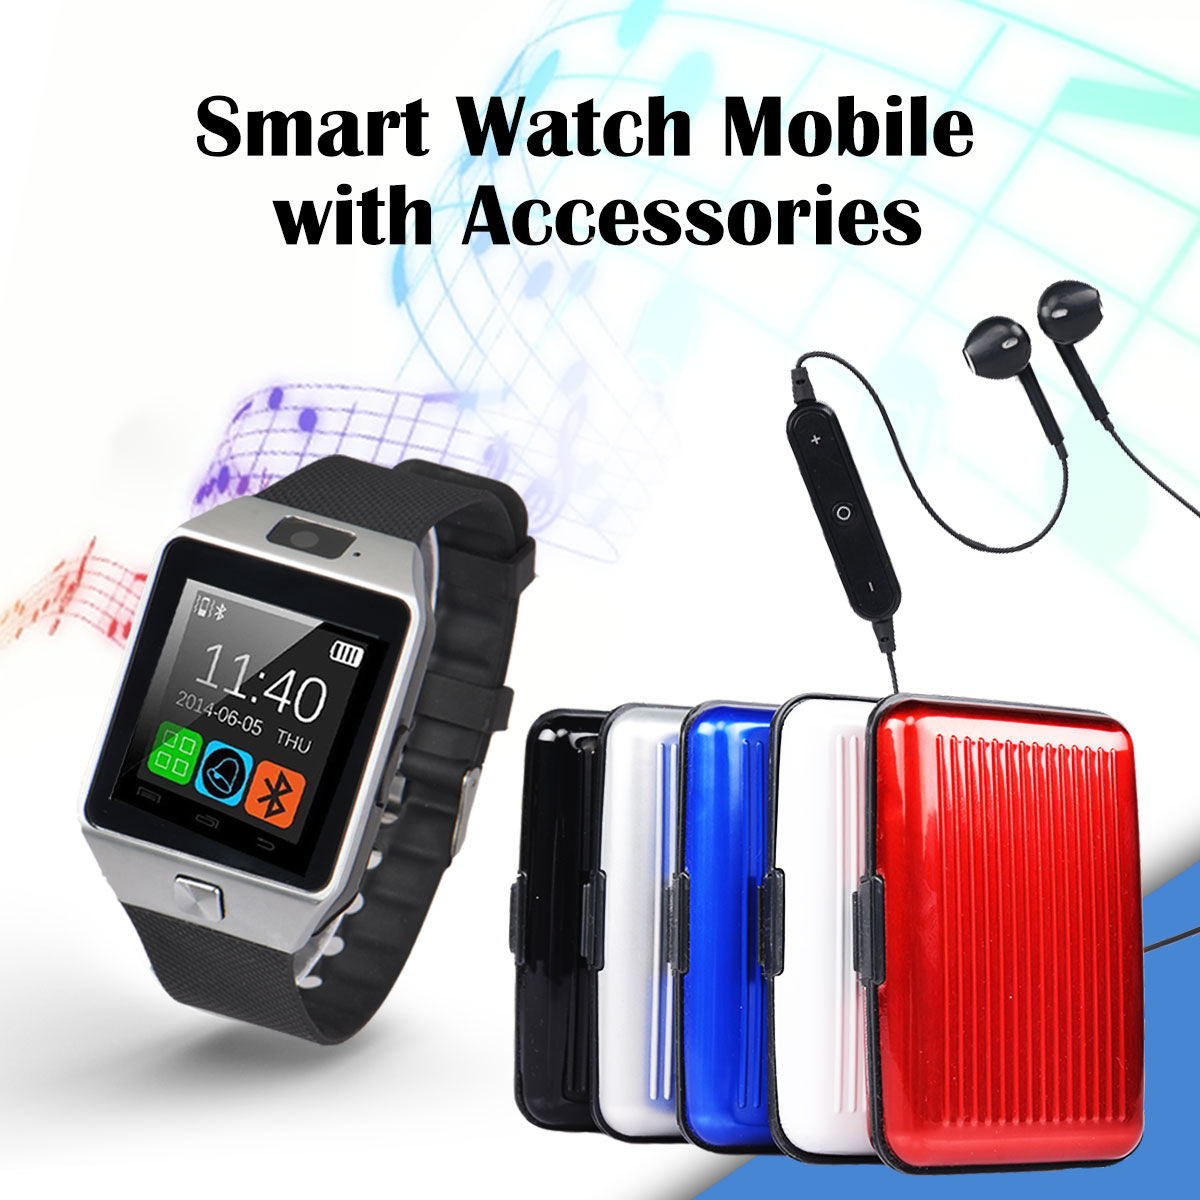 73db24365f7 Buy Smart Watch Mobile with Accessories Online at Best Price in India on  Naaptol.com